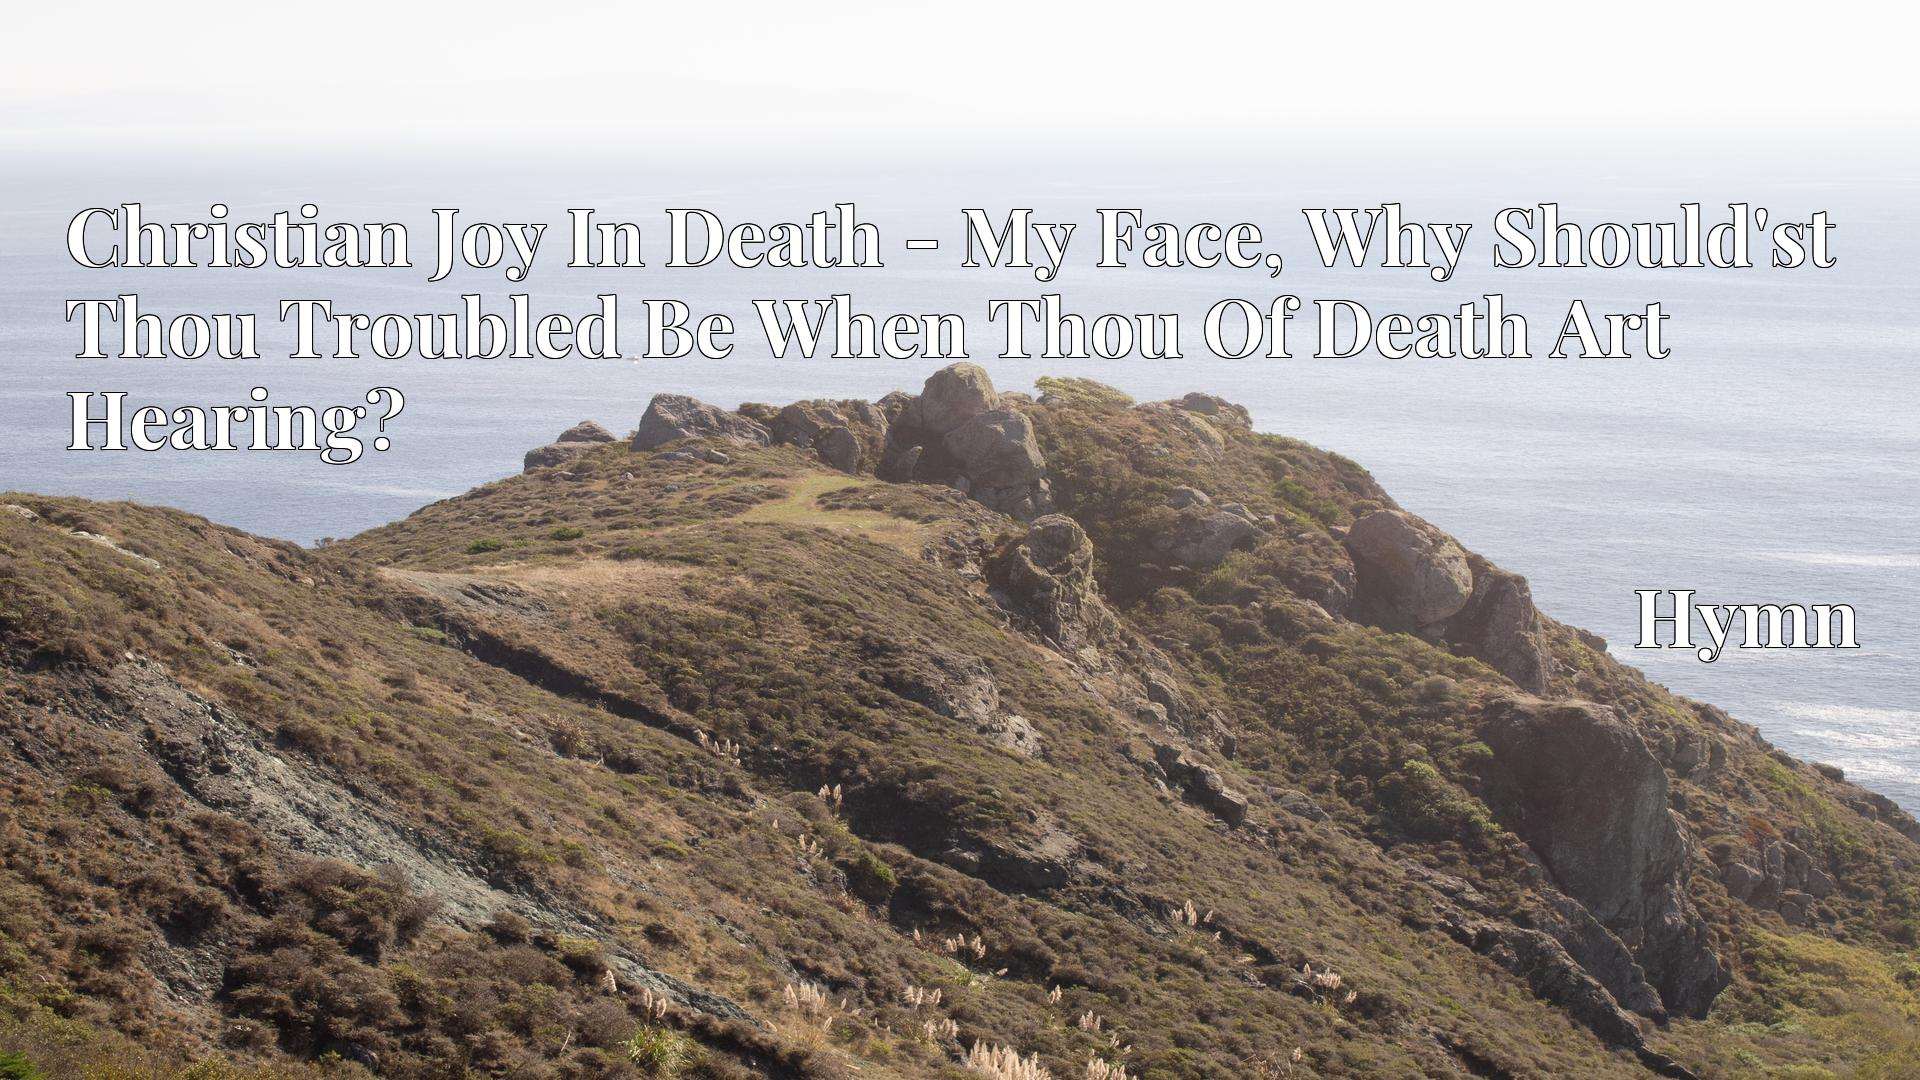 Christian Joy In Death - My Face, Why Should'st Thou Troubled Be When Thou Of Death Art Hearing? - Hymn